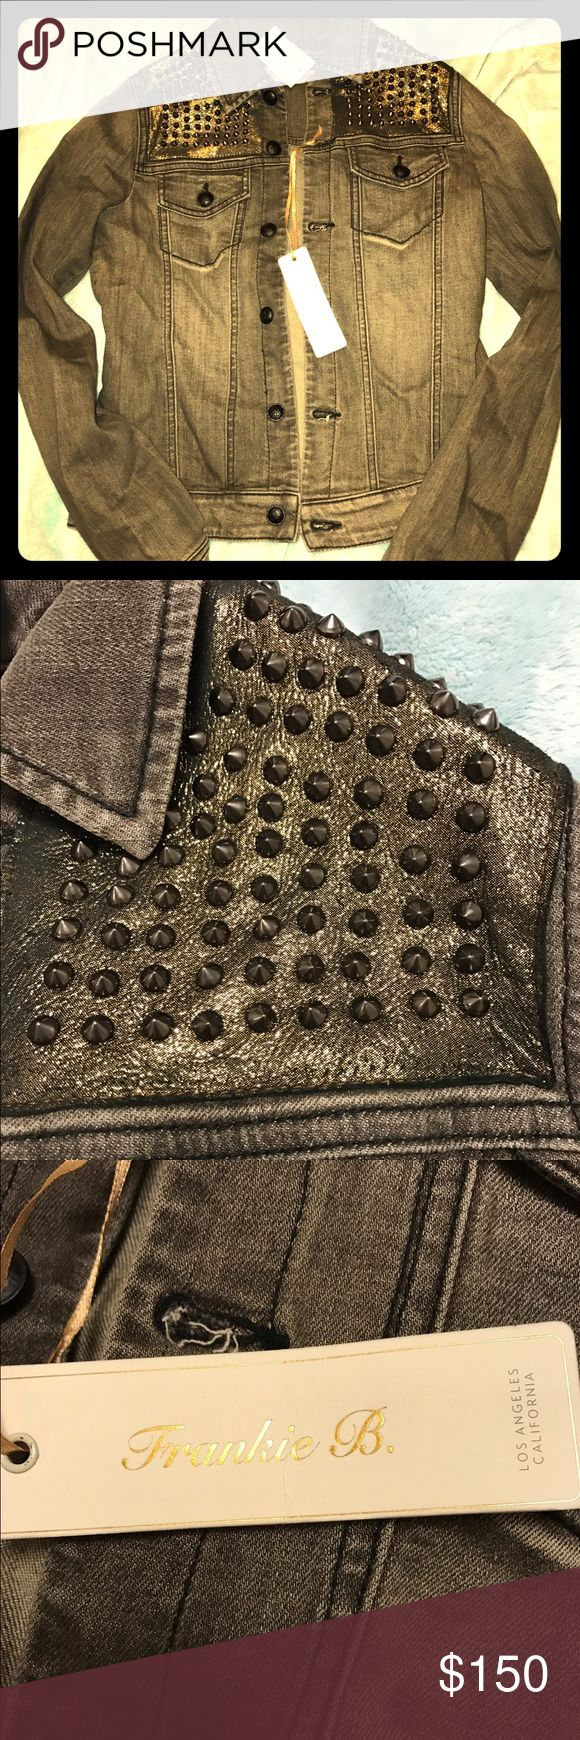 """Studded Black Jean Jacket - Frankie B. - NWT NWT, gold metallic and studded dusty black/charcoal jean jacket by Frankie B. Style is """"Armada"""". So stunning and I wish I could keep, but it just doesn't fit me! :( Sold out everywhere in this color and size. Frankie B. Jackets & Coats Jean Jackets"""